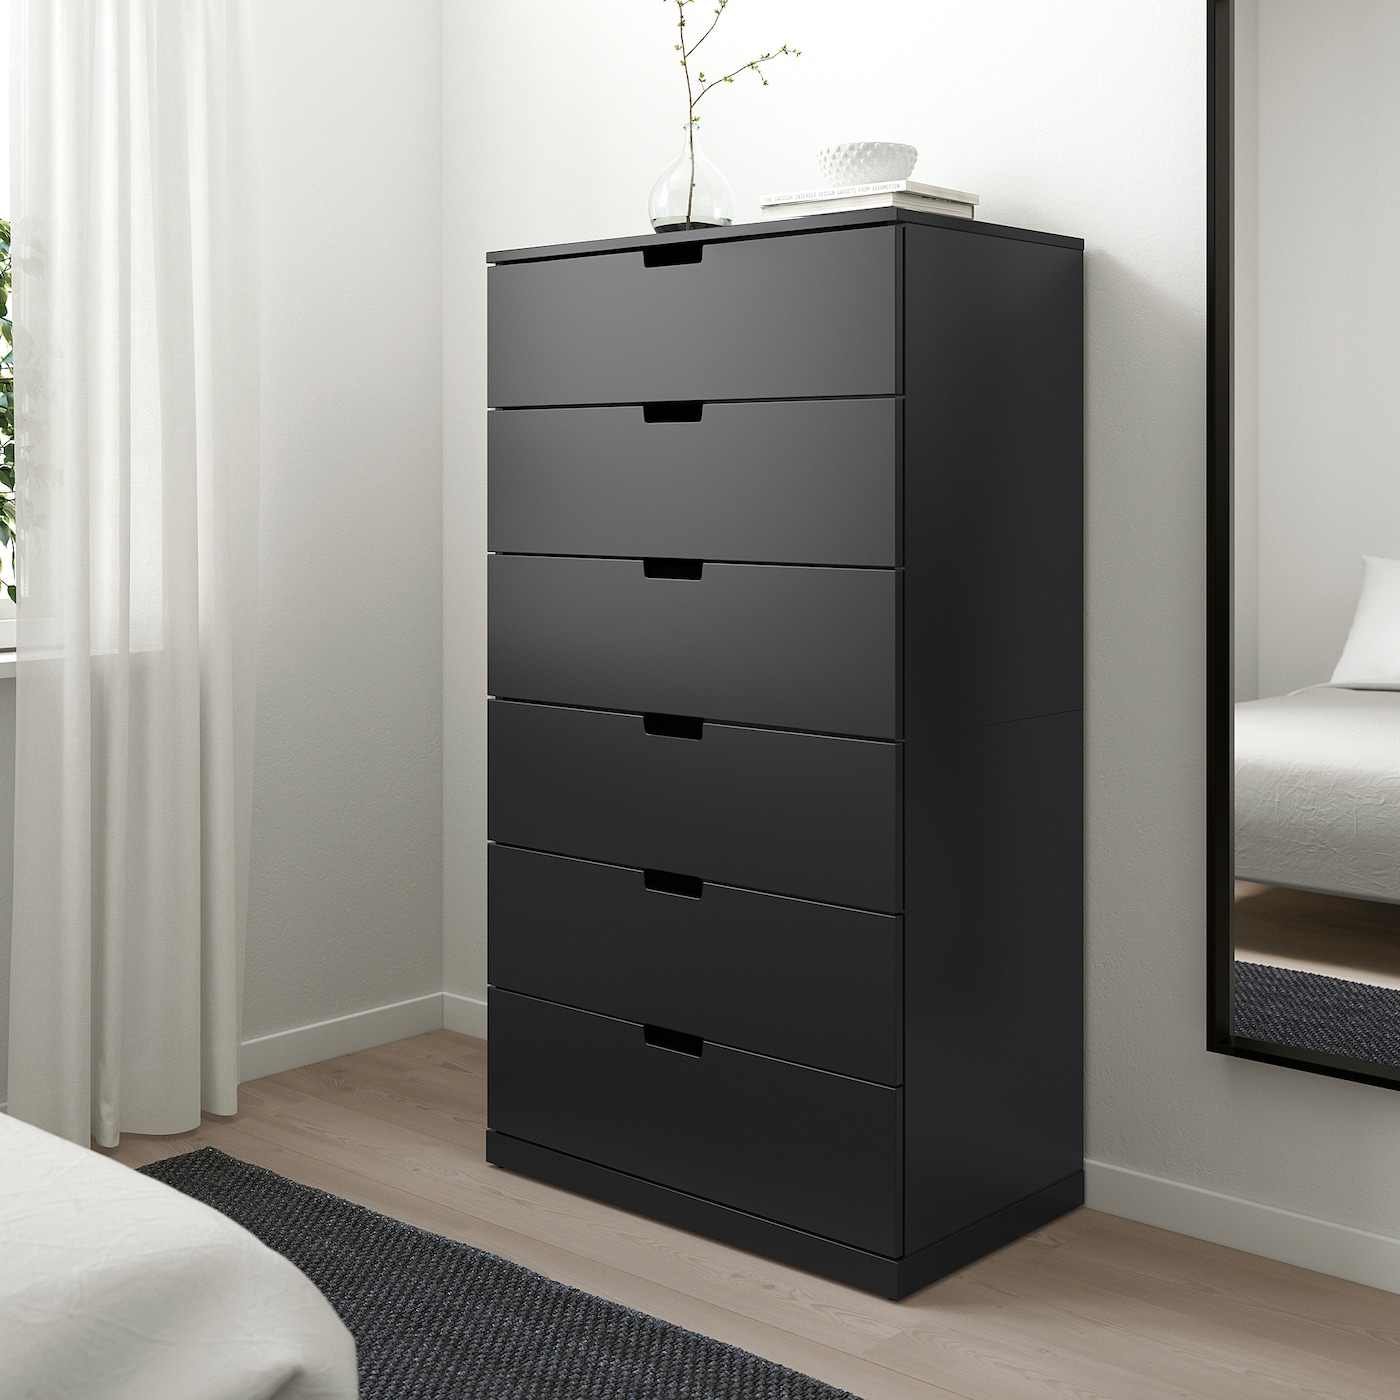 NORDLI Chest of 6 drawers, anthracite, 80x145 cm